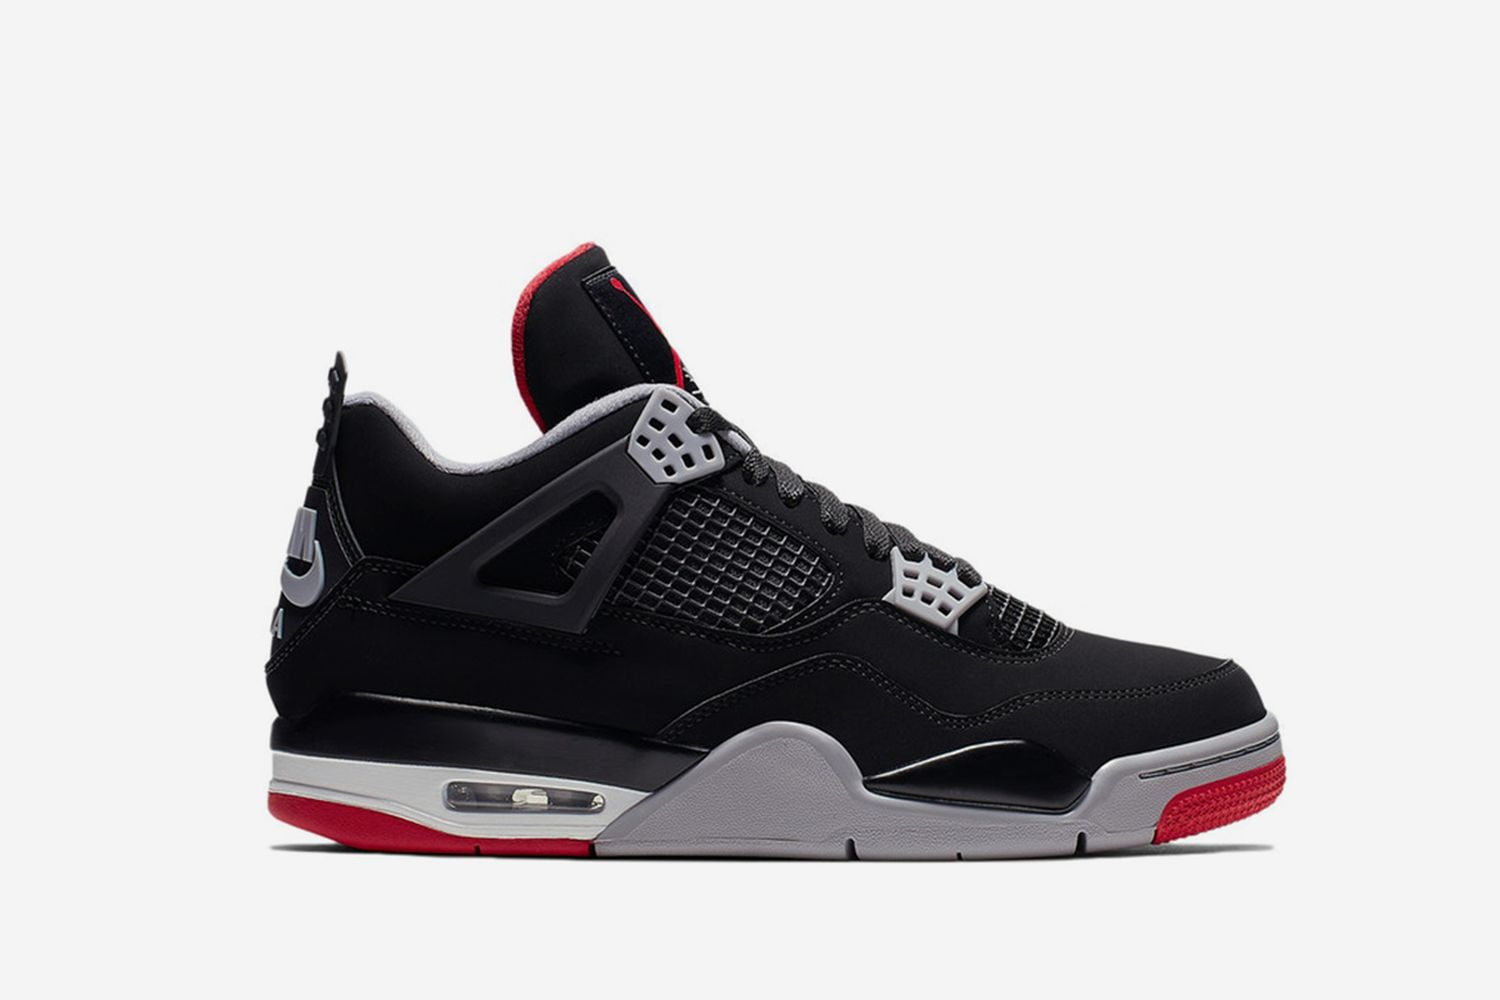 Jordan 4 Retro Black Cement (2019)